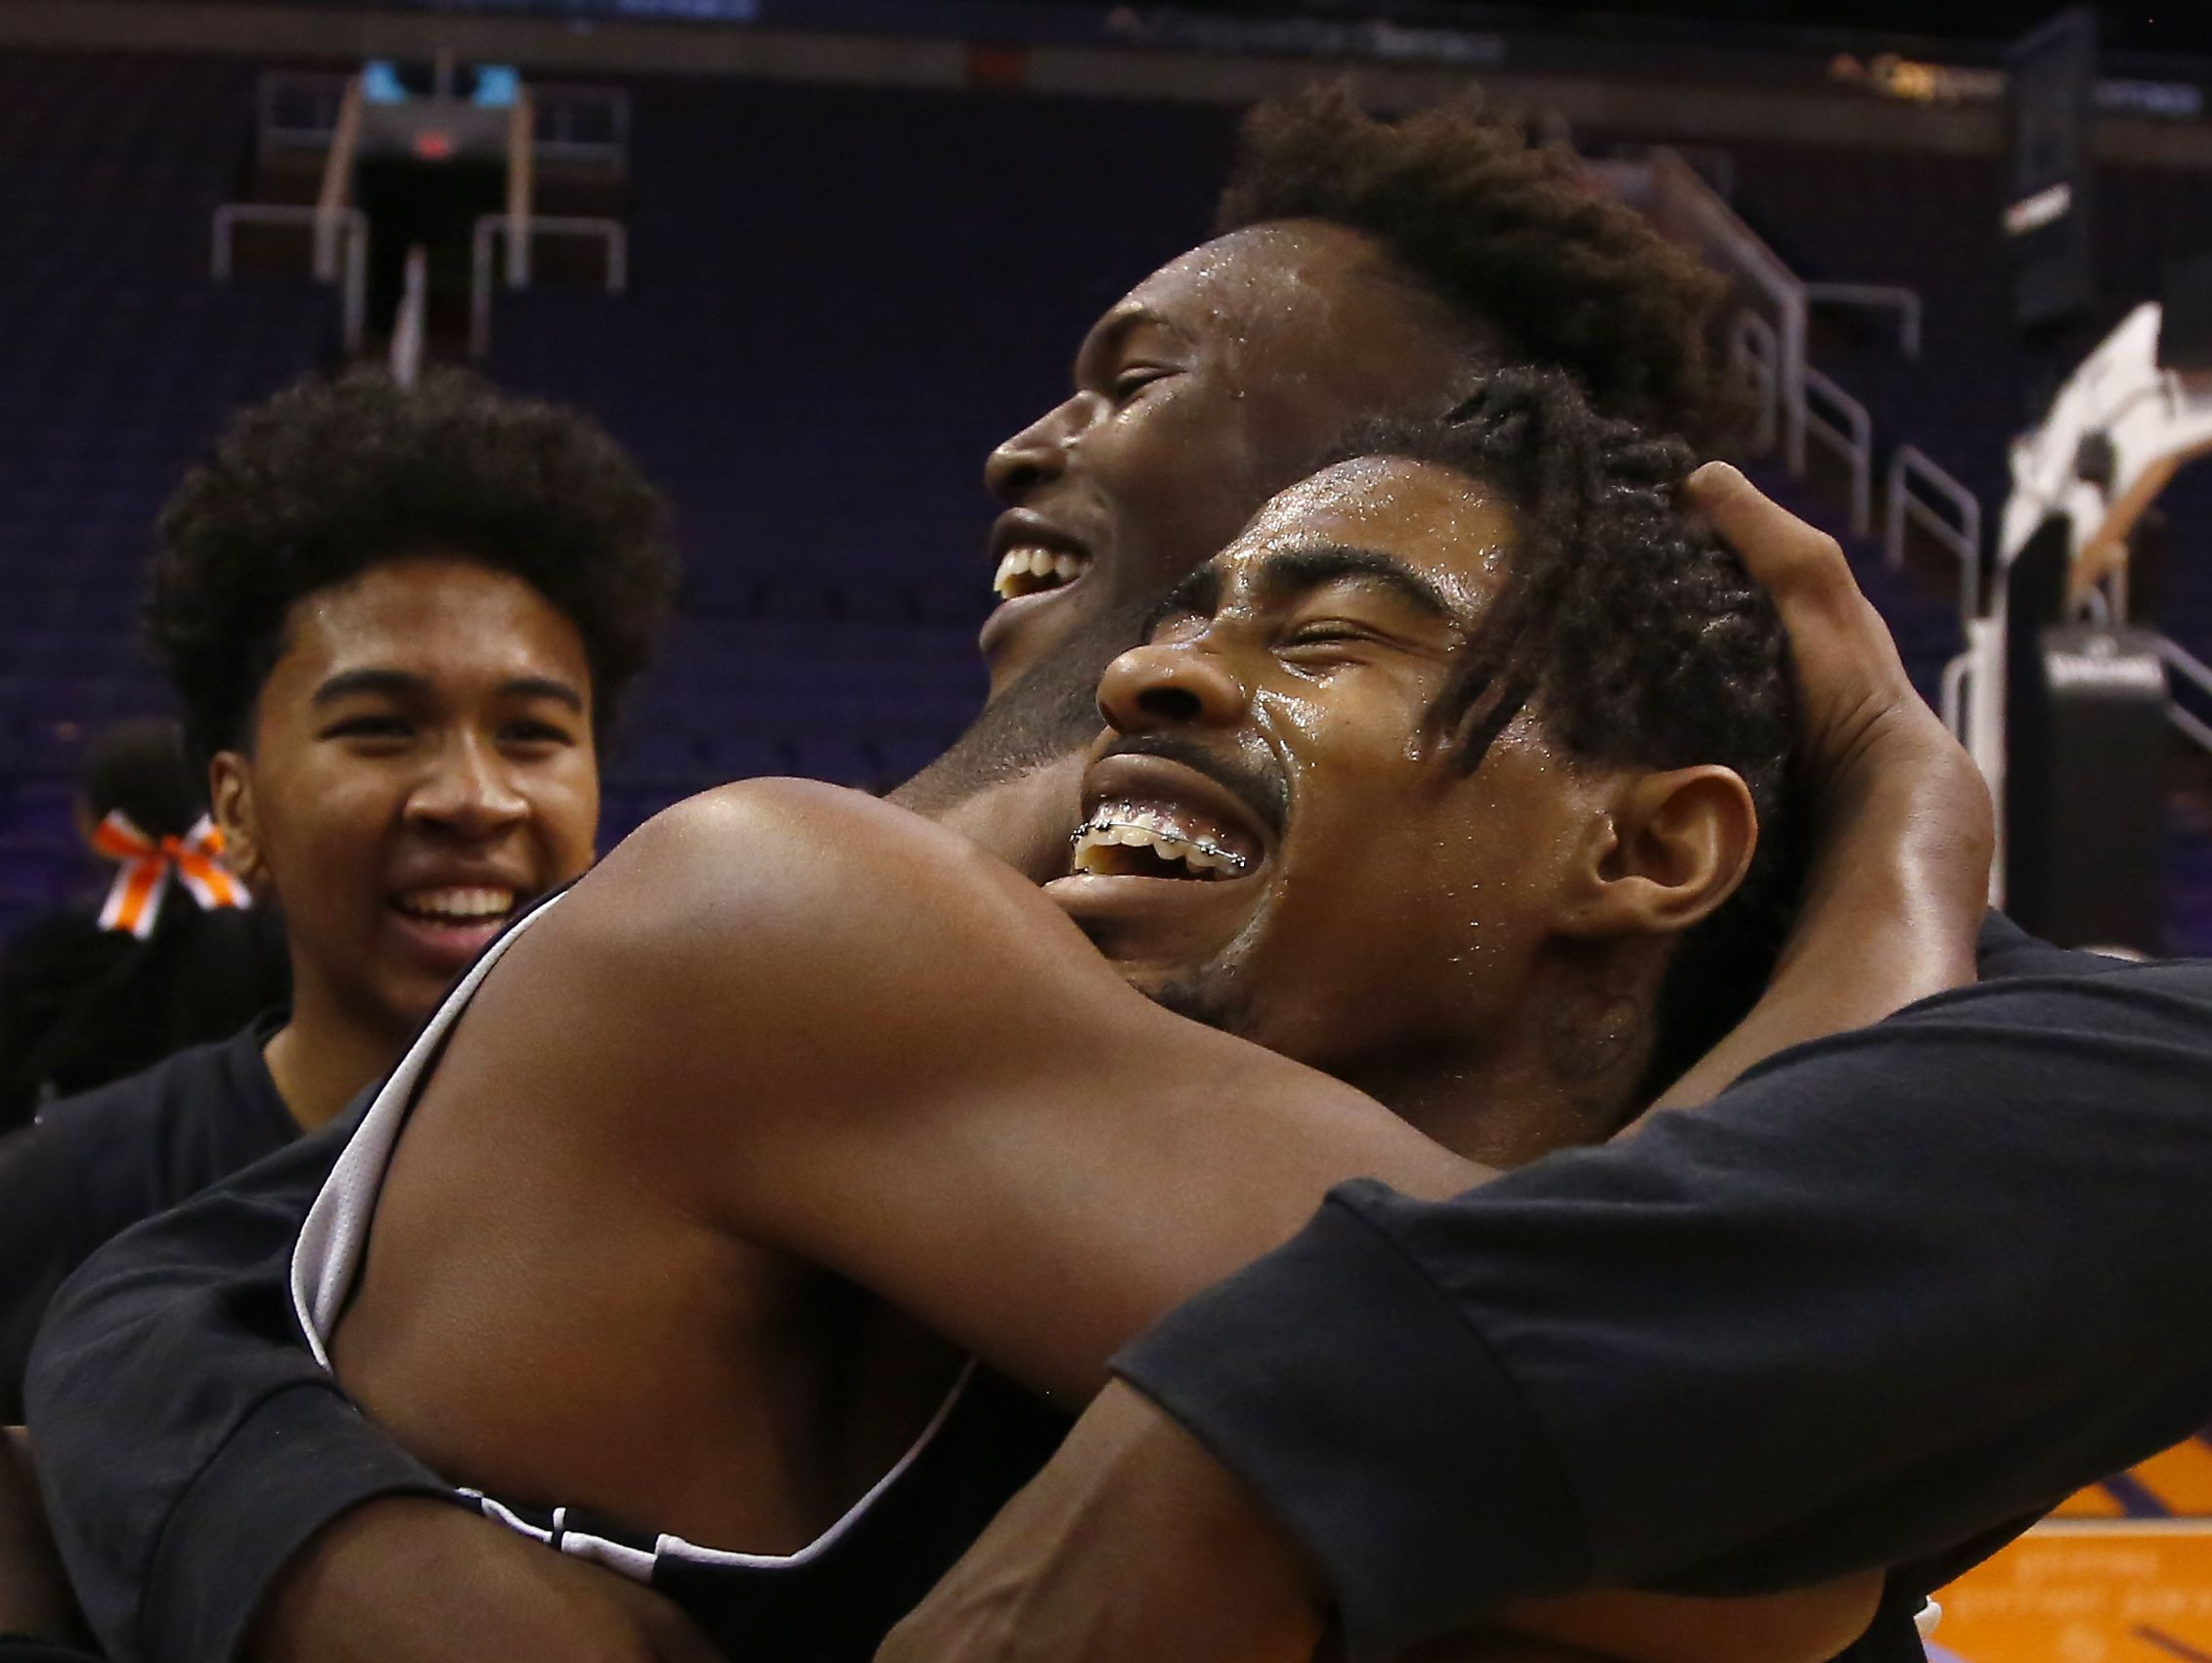 Skyline celebrates its win in the Division III Canyon Athletic Association Championship over Tri-City Christian, 69-65, at Talking Stick Resort Arena on February 24, 2017 in Phoenix, Ariz.